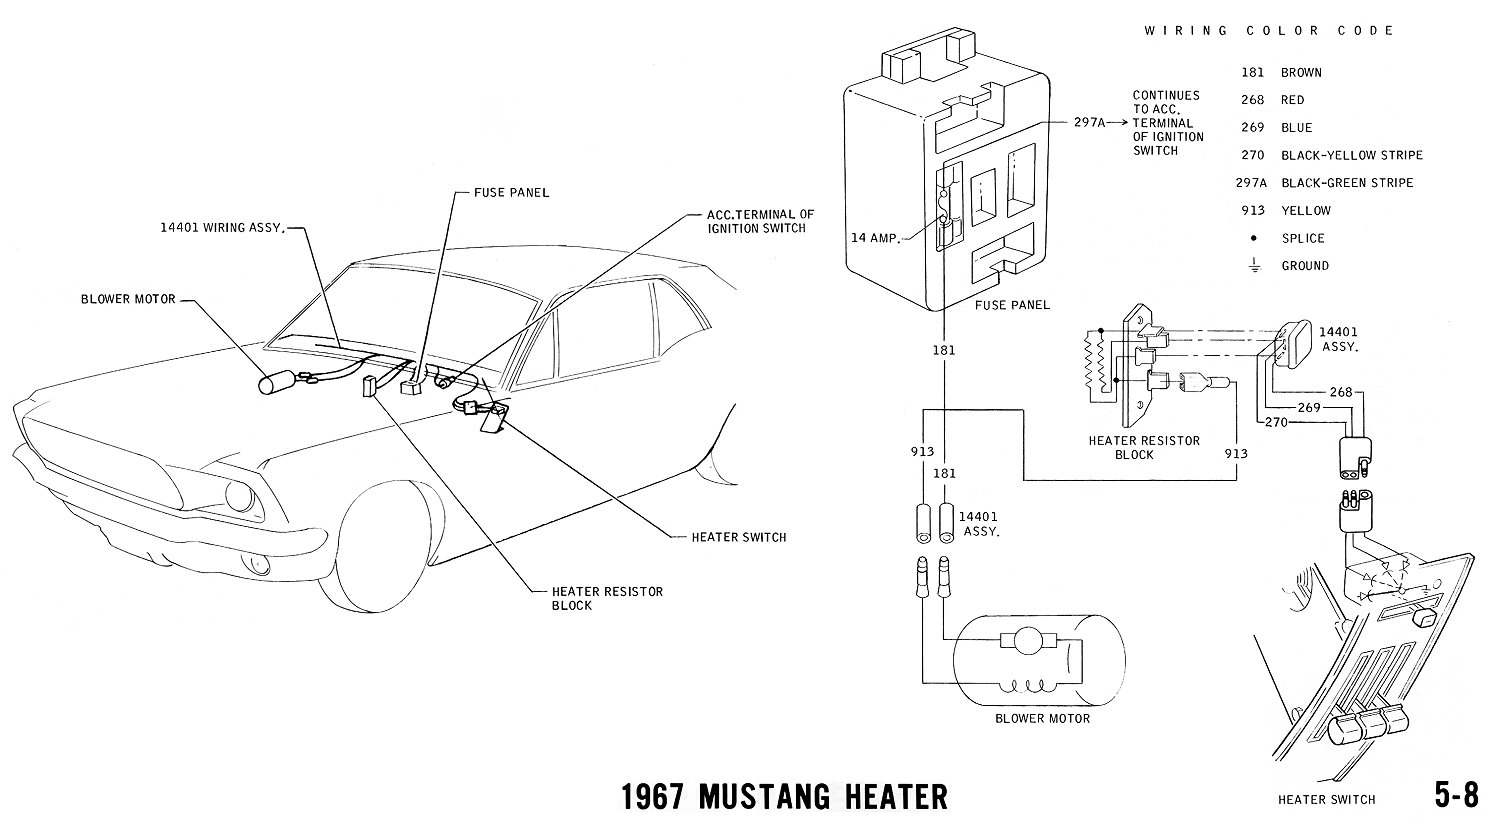 1967 mustang heater  pictorial and schematic